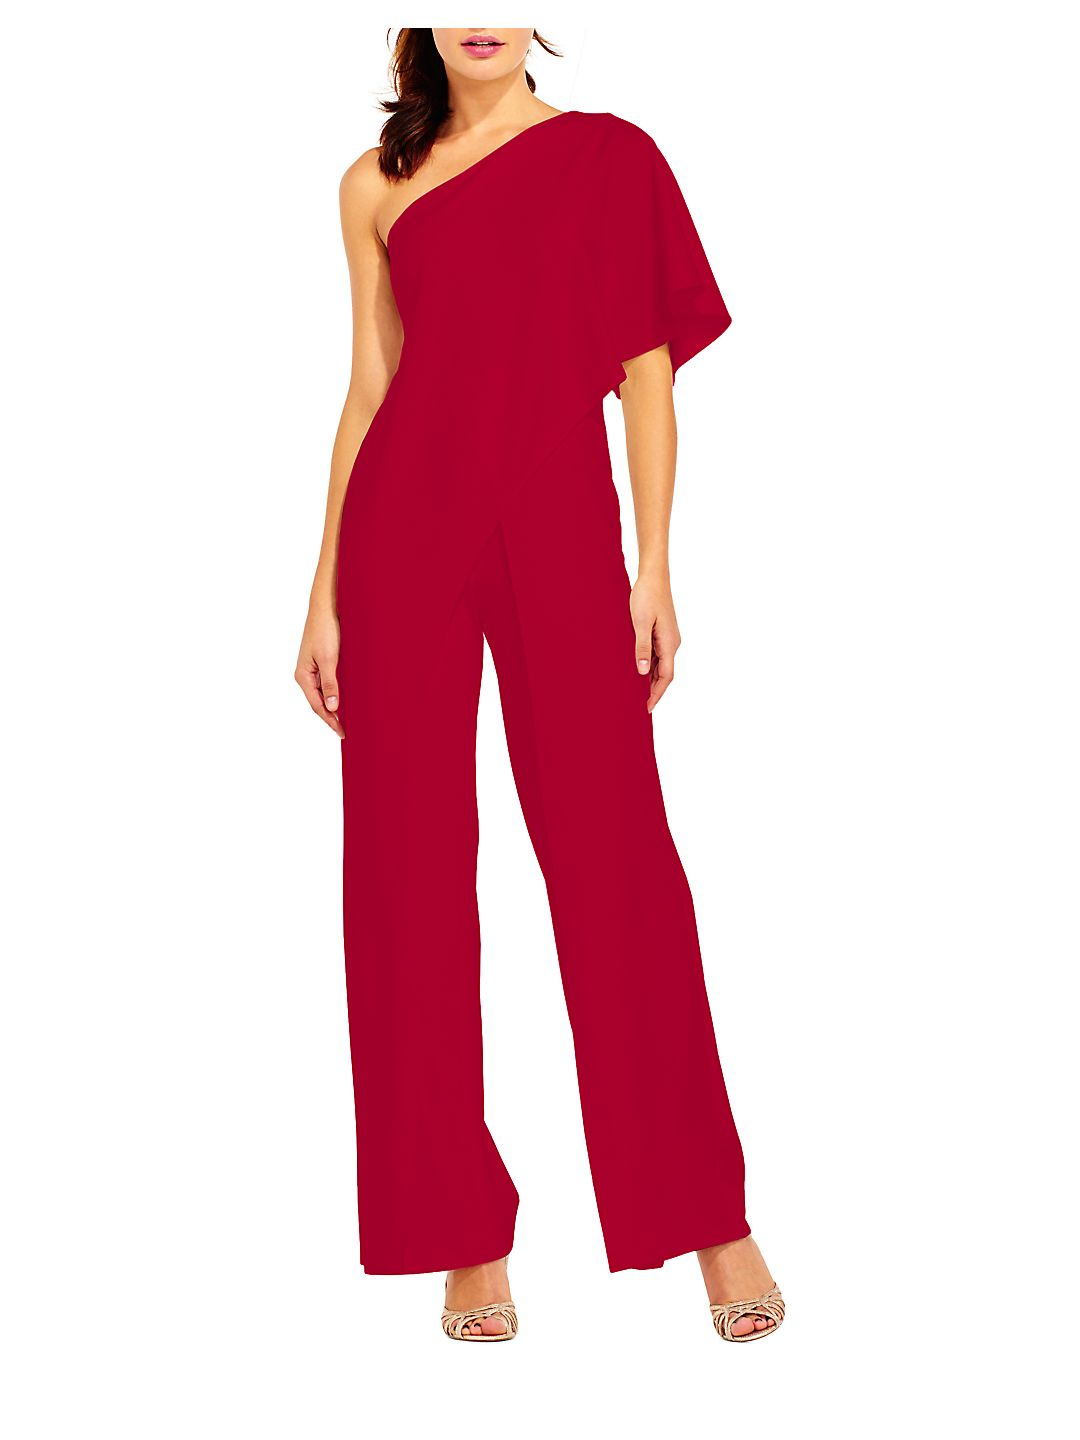 Adrianna Papell Women's One Shoulder Crepe Melania Jumpsuit